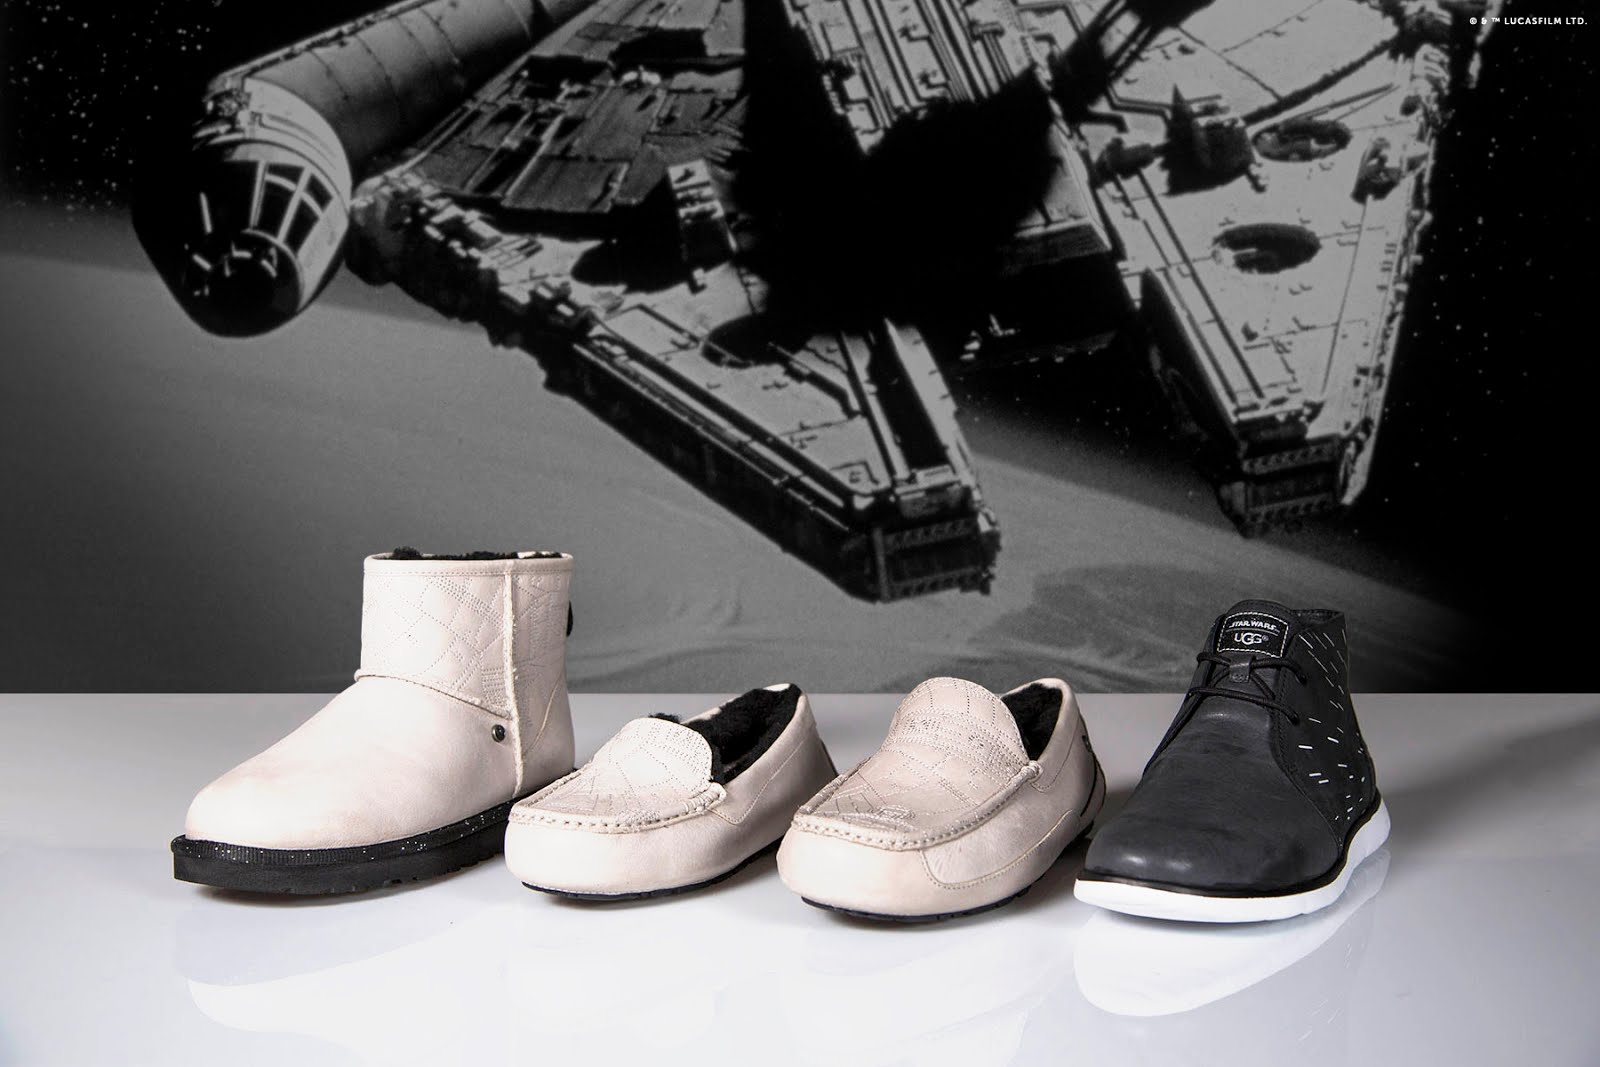 d8ffebe6c32 UGG Launches Star Wars Hero Collection | hkblogger